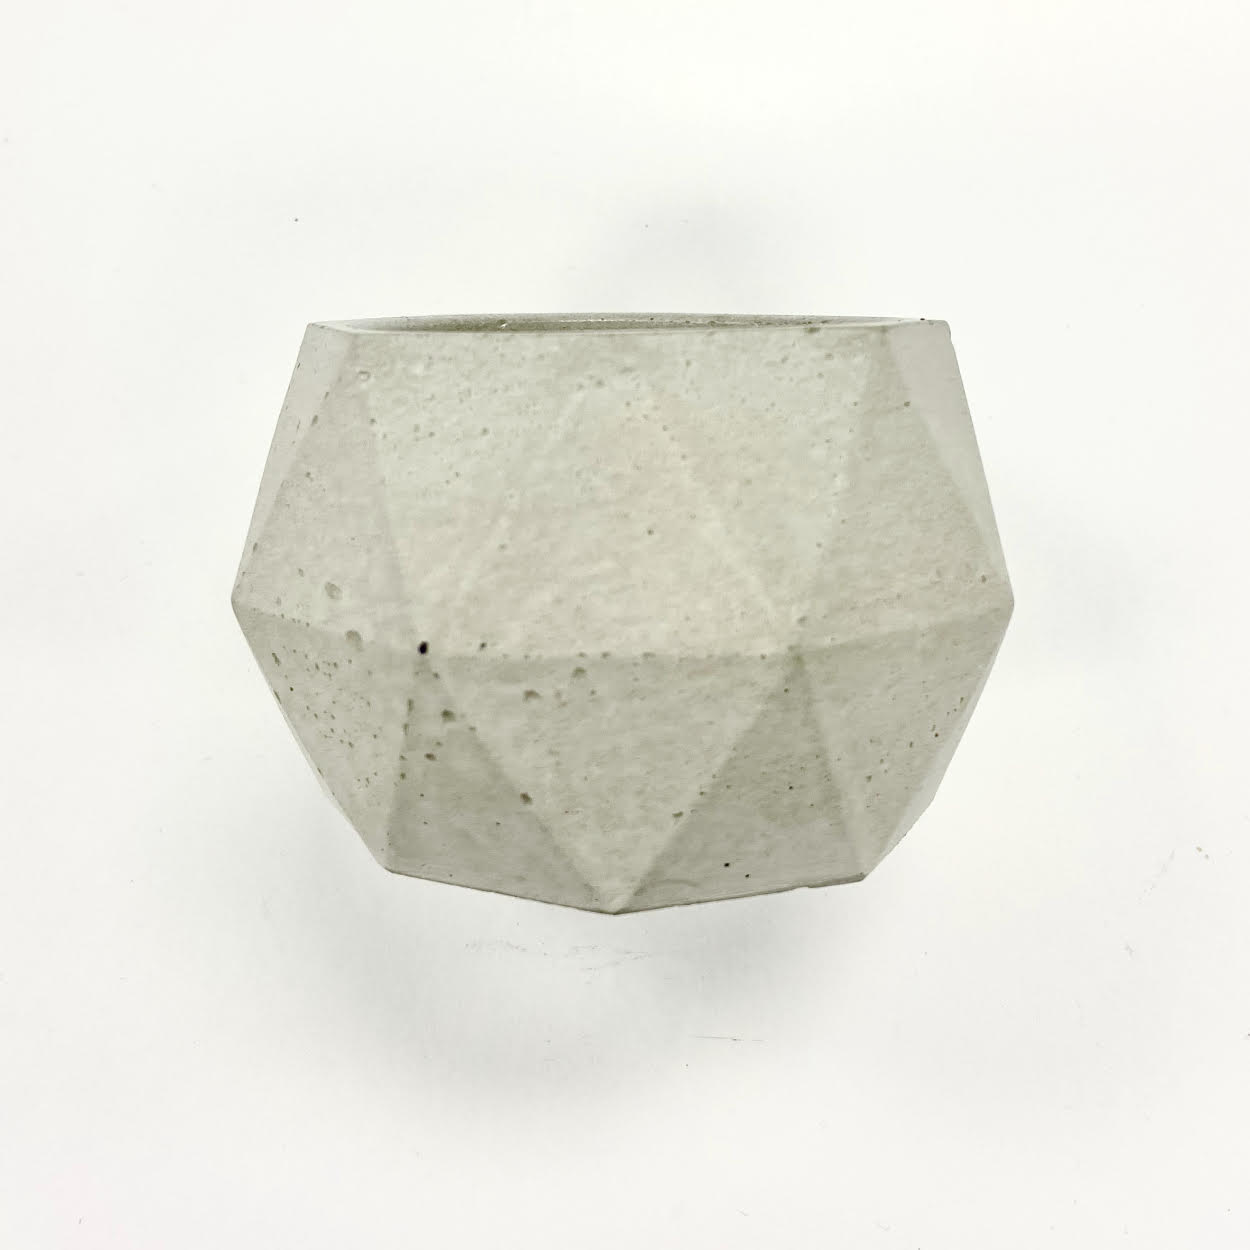 Image of a Natural Cement Geometric Candle Holder